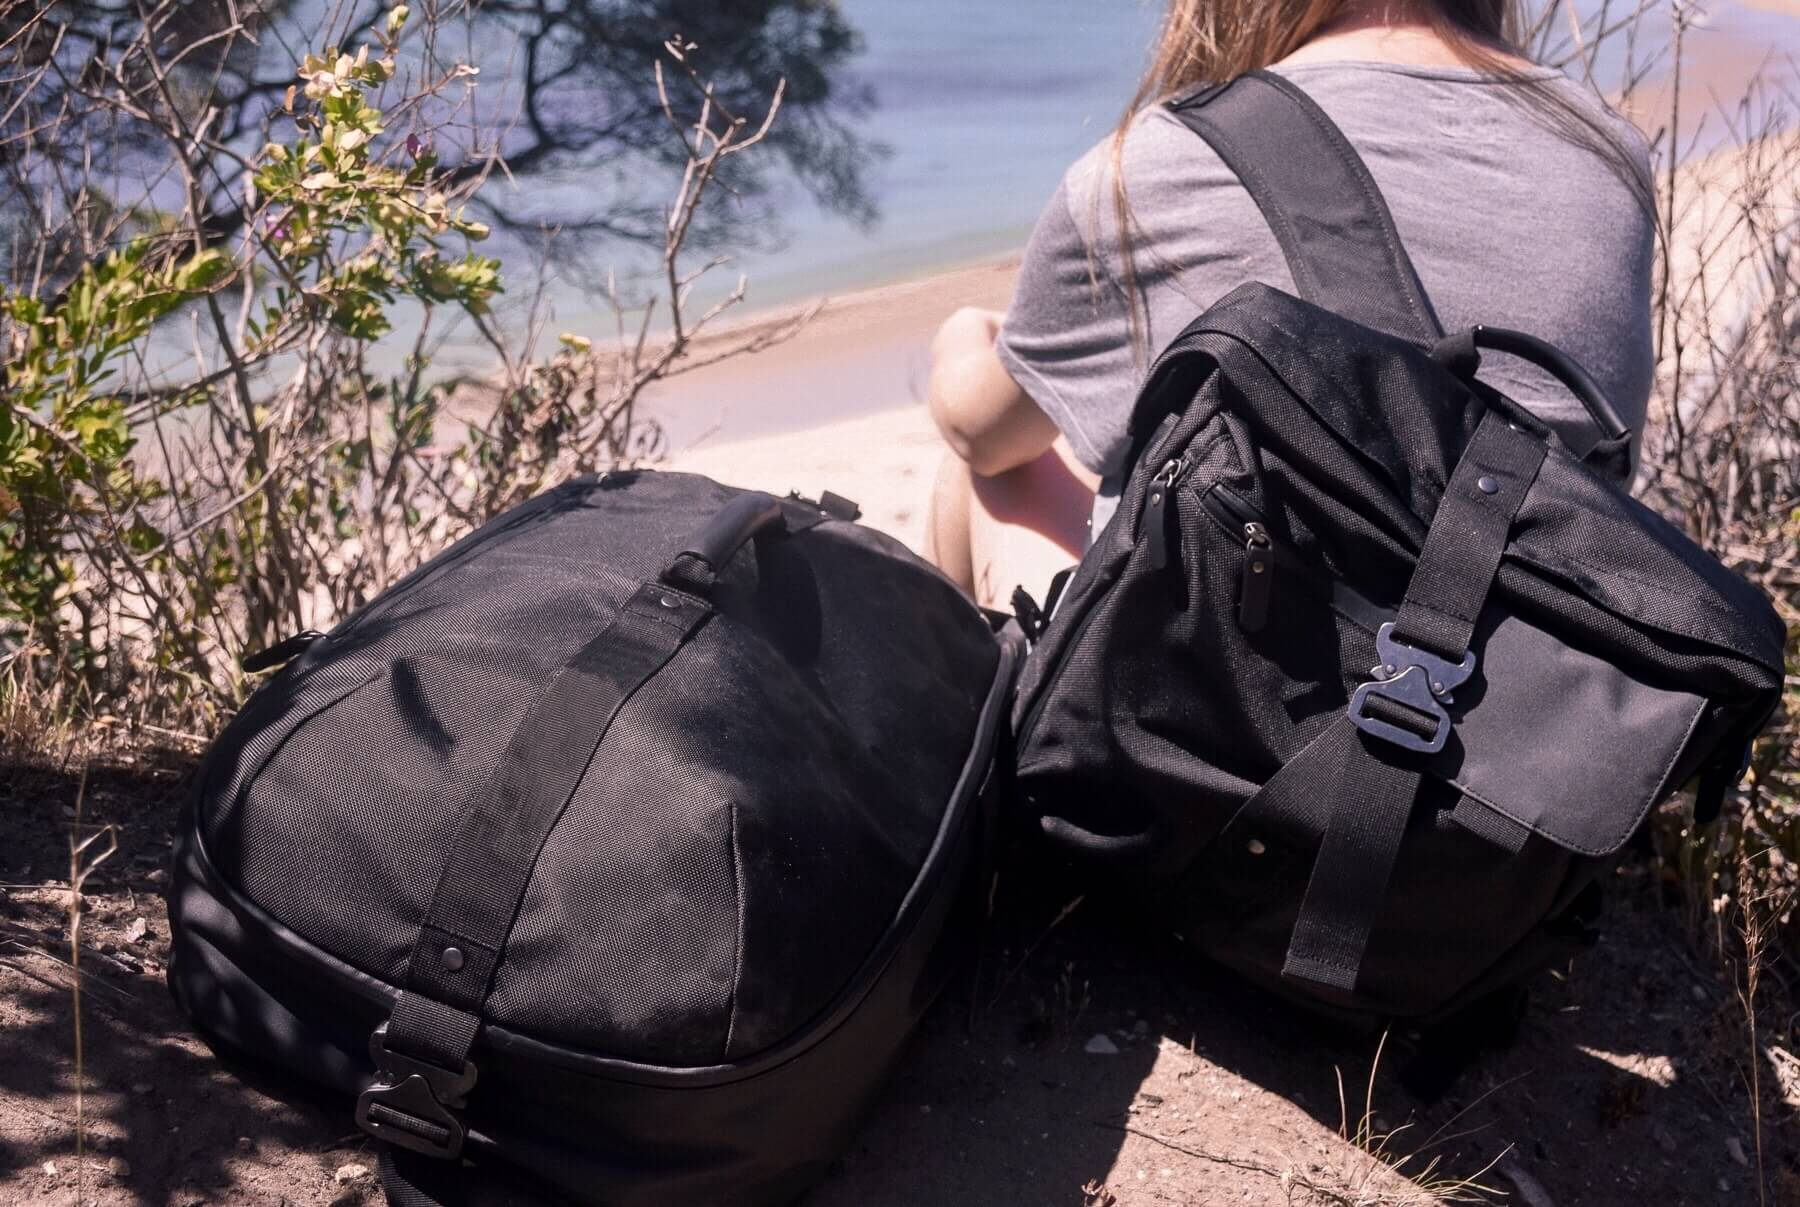 A girl overlooking the ocean with a black day bag on her back, and a big black duffle next to her